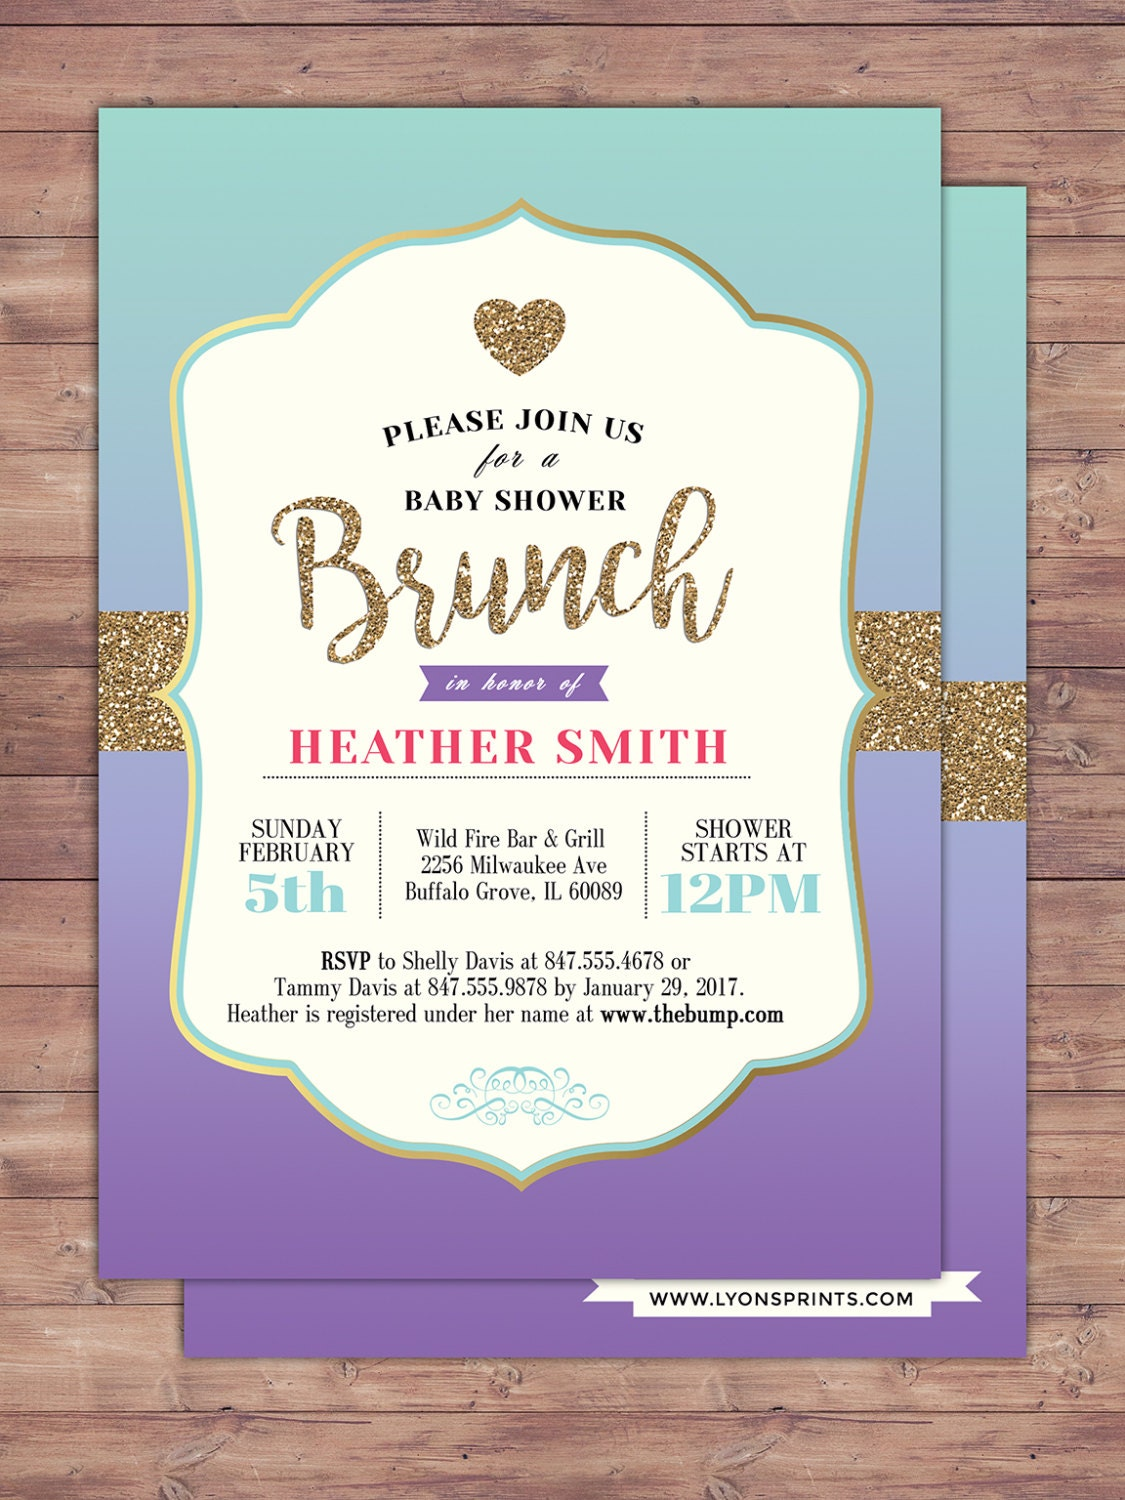 Spade party, invitation, bridal shower invitation, brunch, invite ...